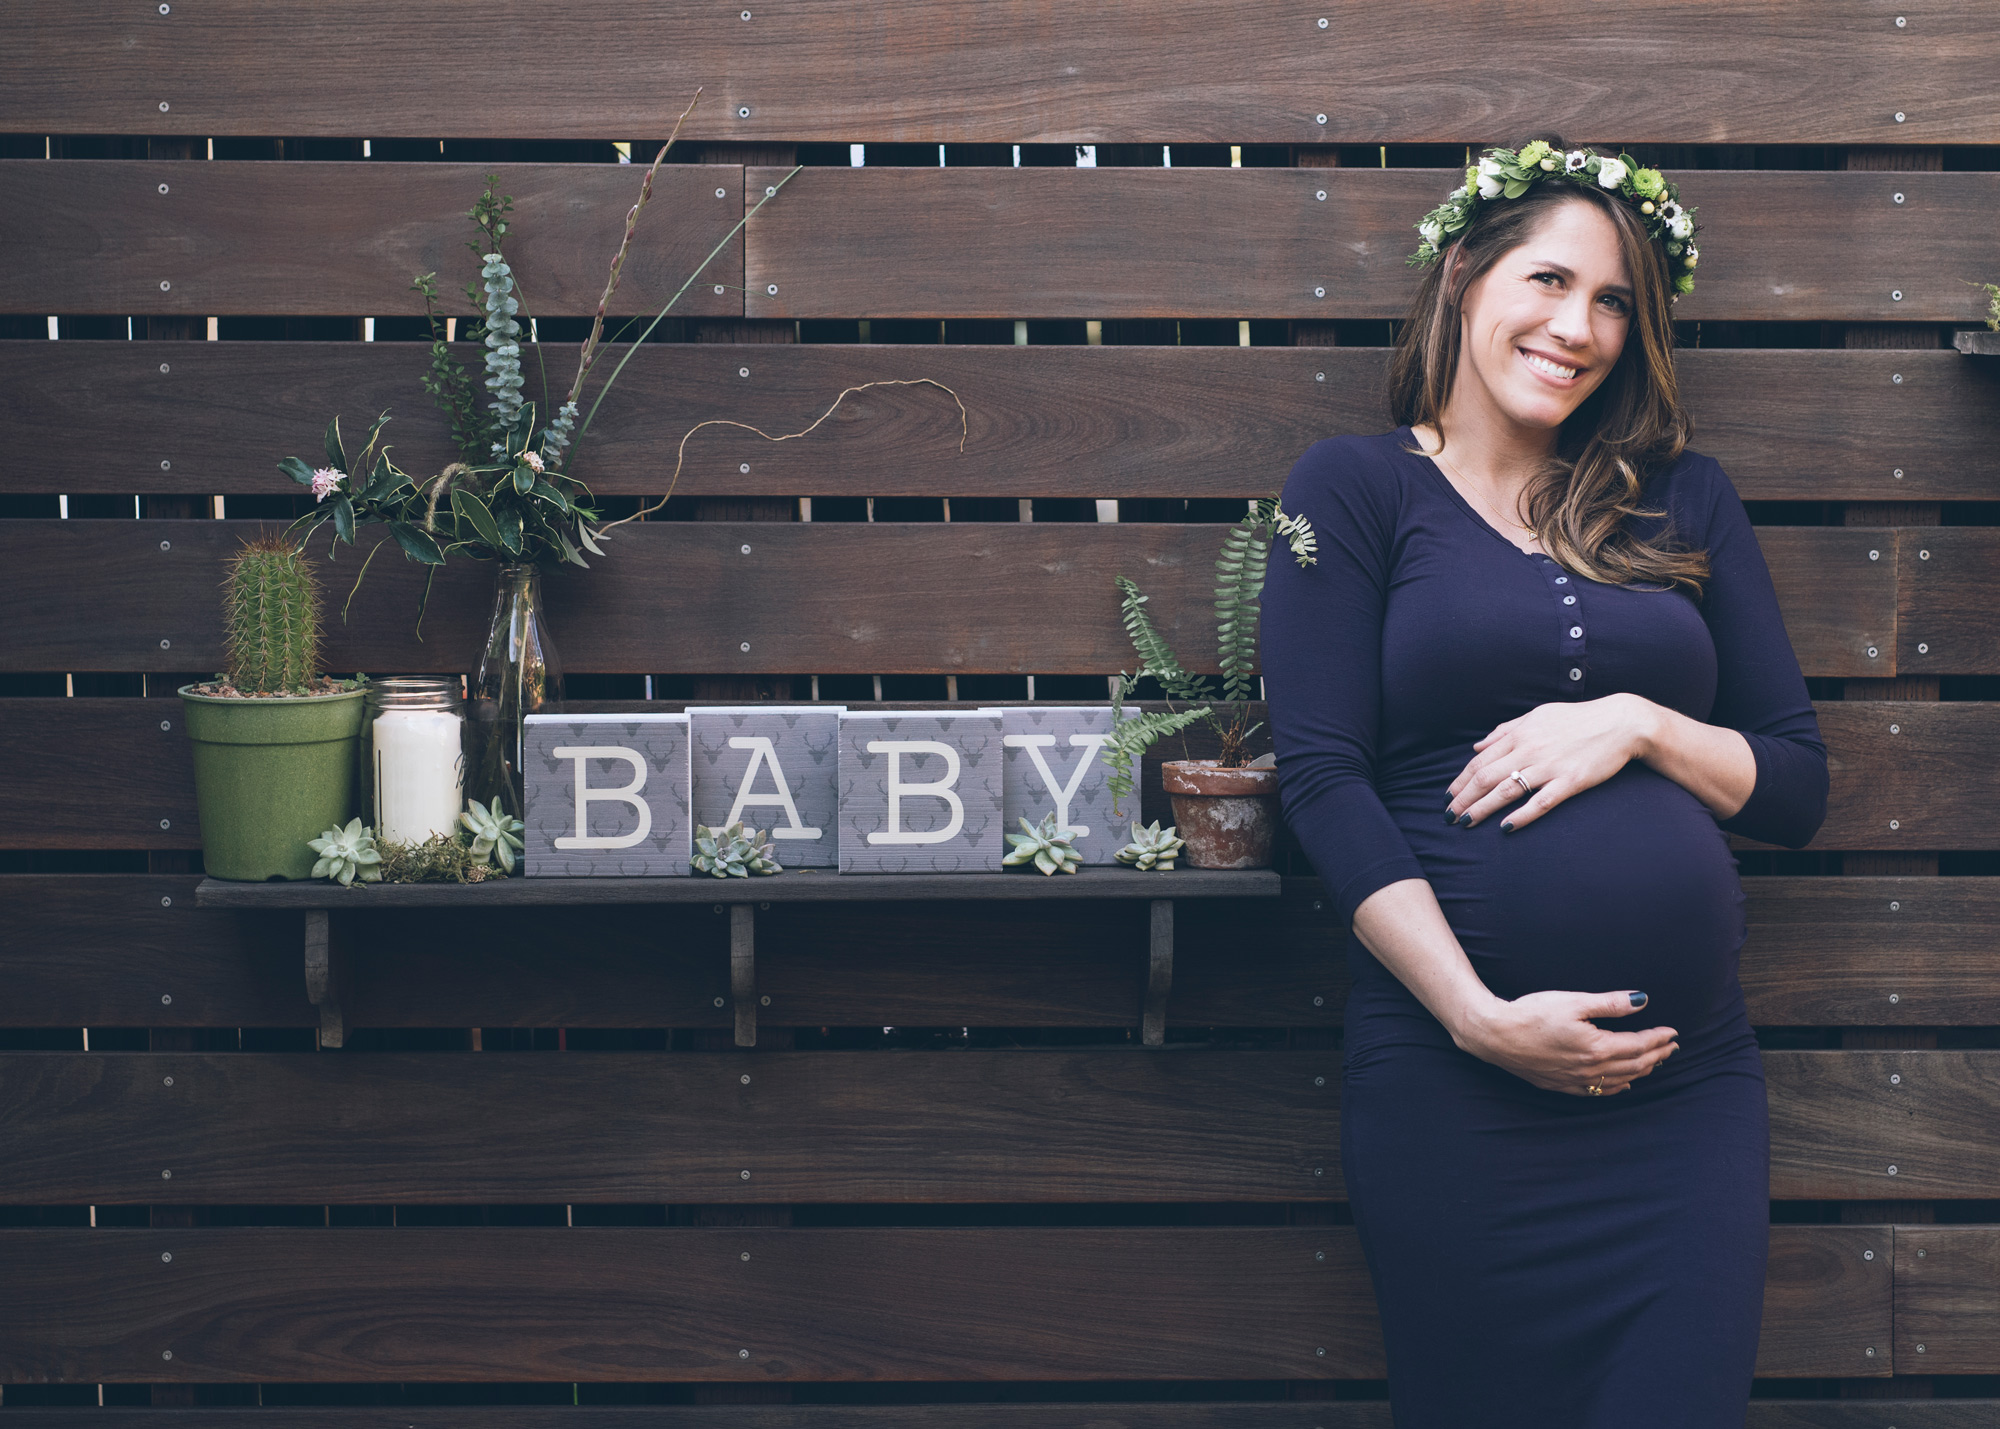 pregnant-woman-with-a-baby-sign.jpg